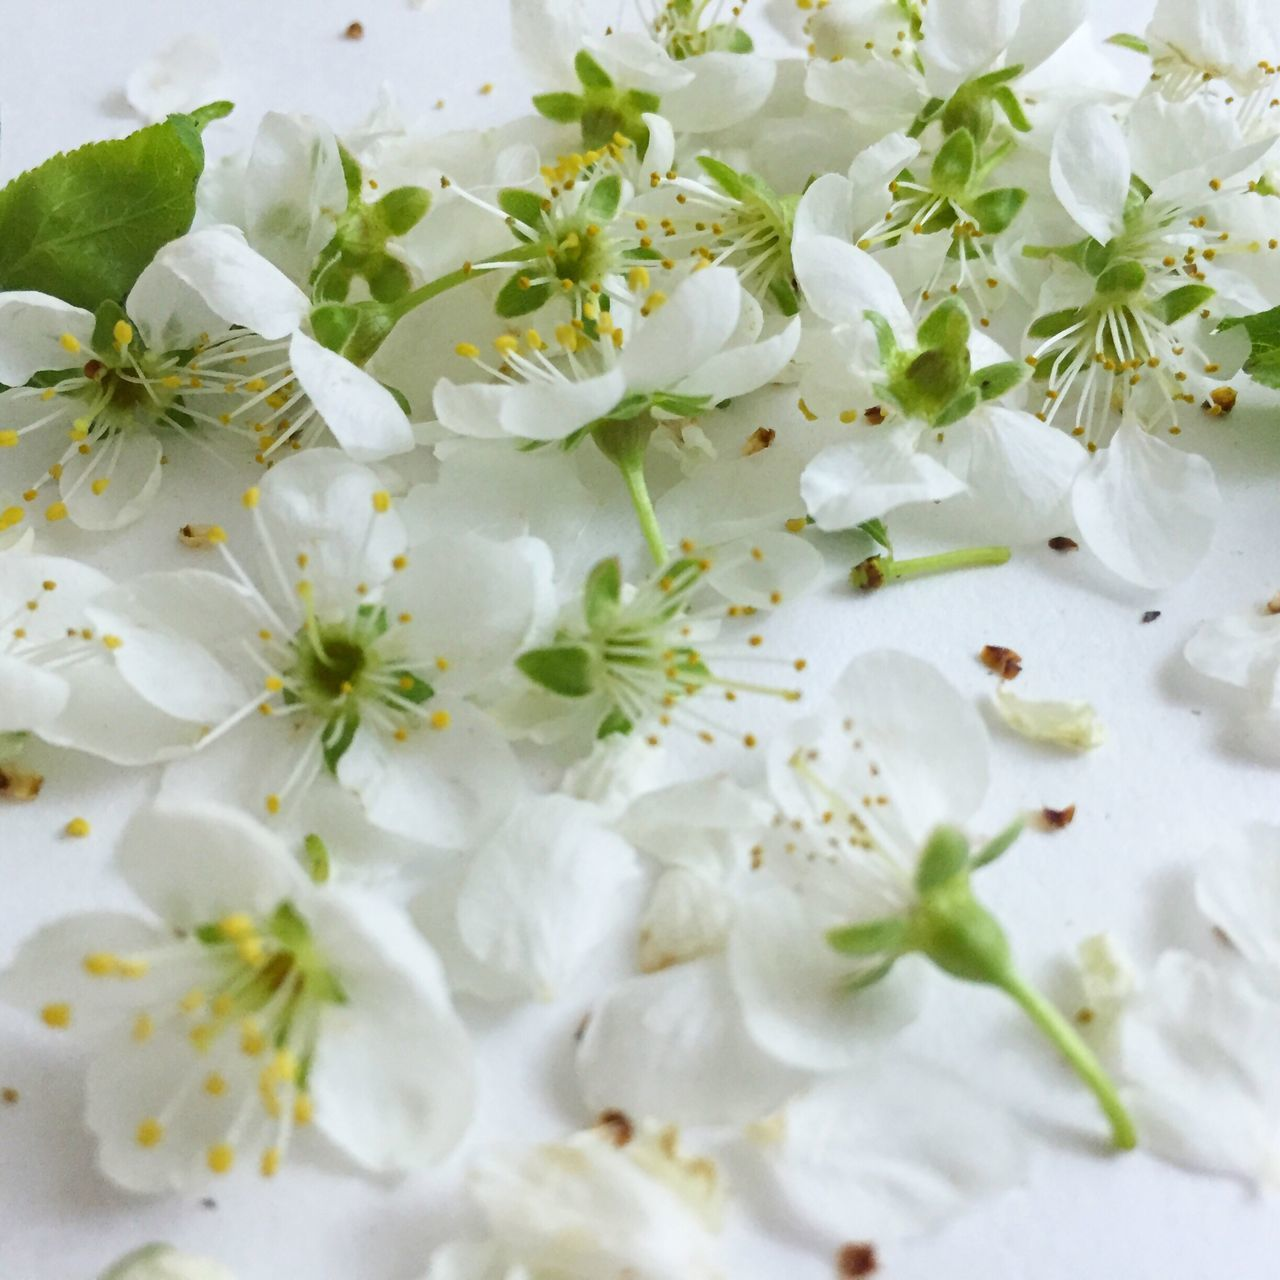 flower, white color, freshness, food and drink, food, no people, petal, close-up, fragility, flower head, leaf, indoors, backgrounds, nature, beauty in nature, day, ready-to-eat